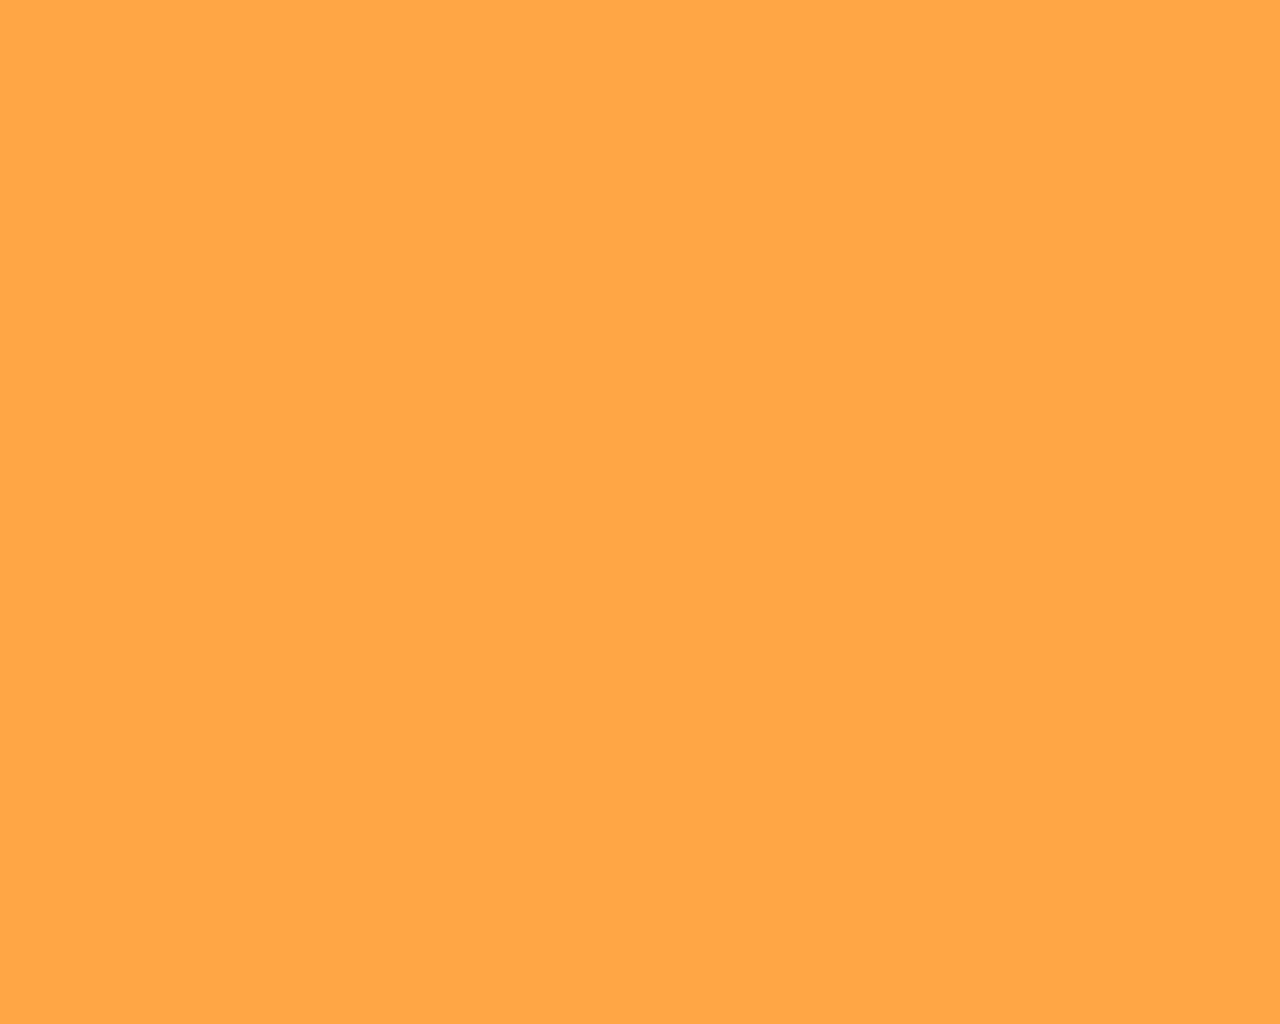 1280x1024 Neon Carrot Solid Color Background